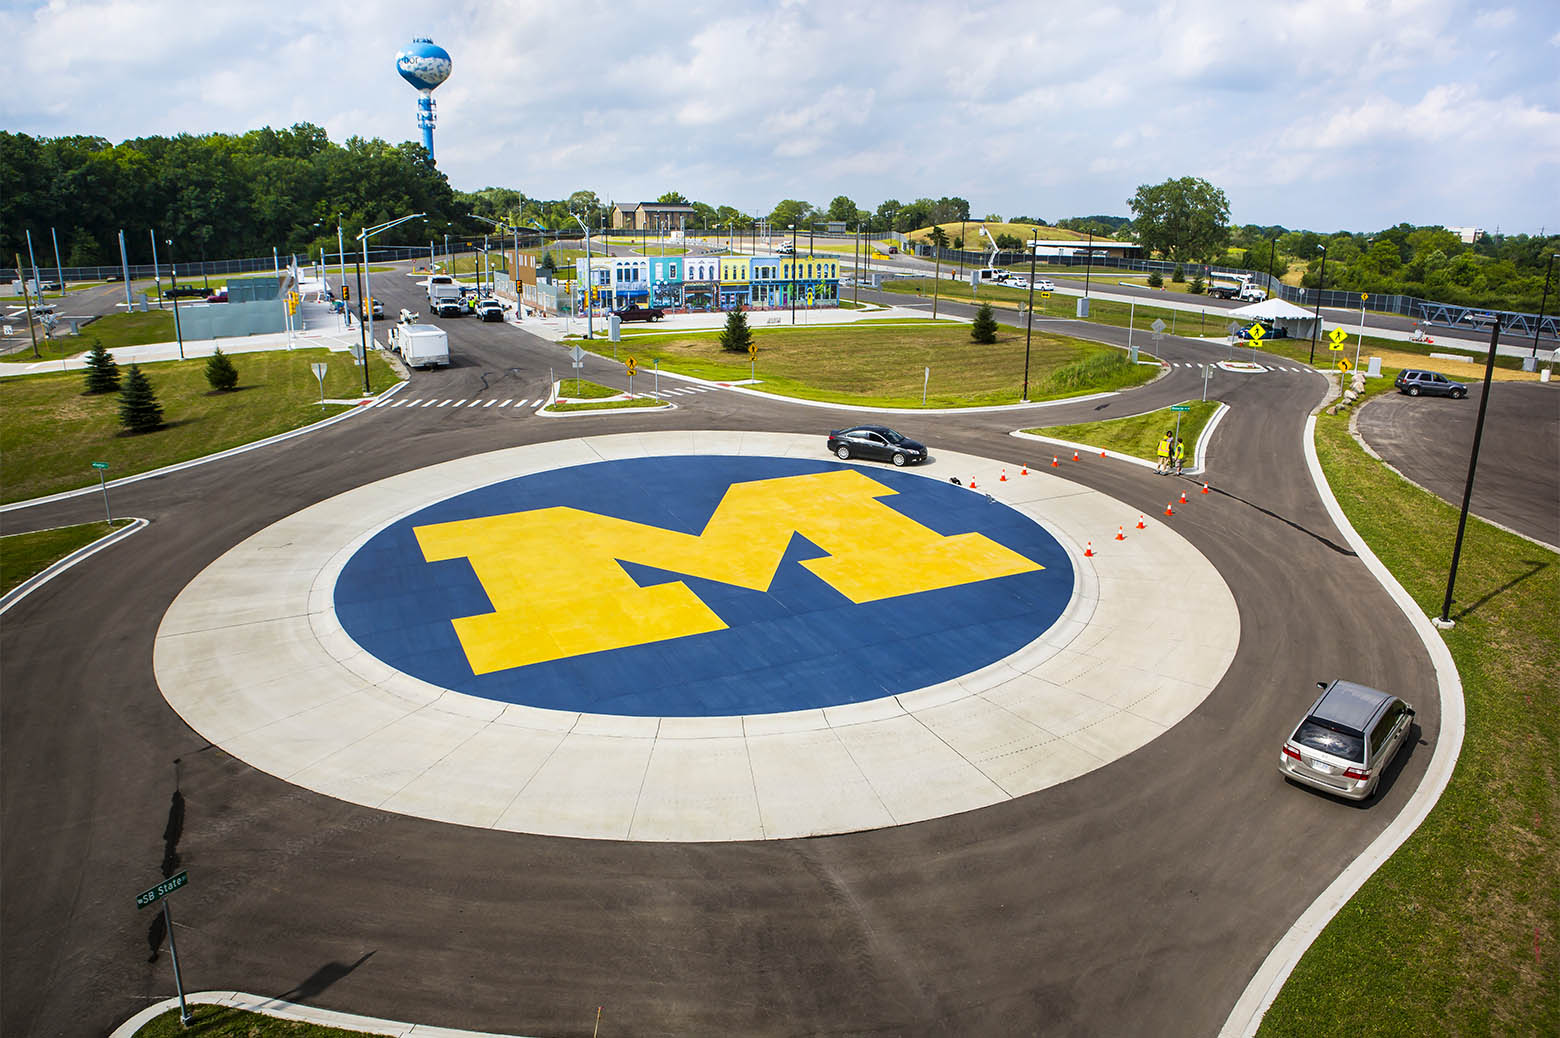 An aerial view of the large block M painted within the roundabout at Mcity.